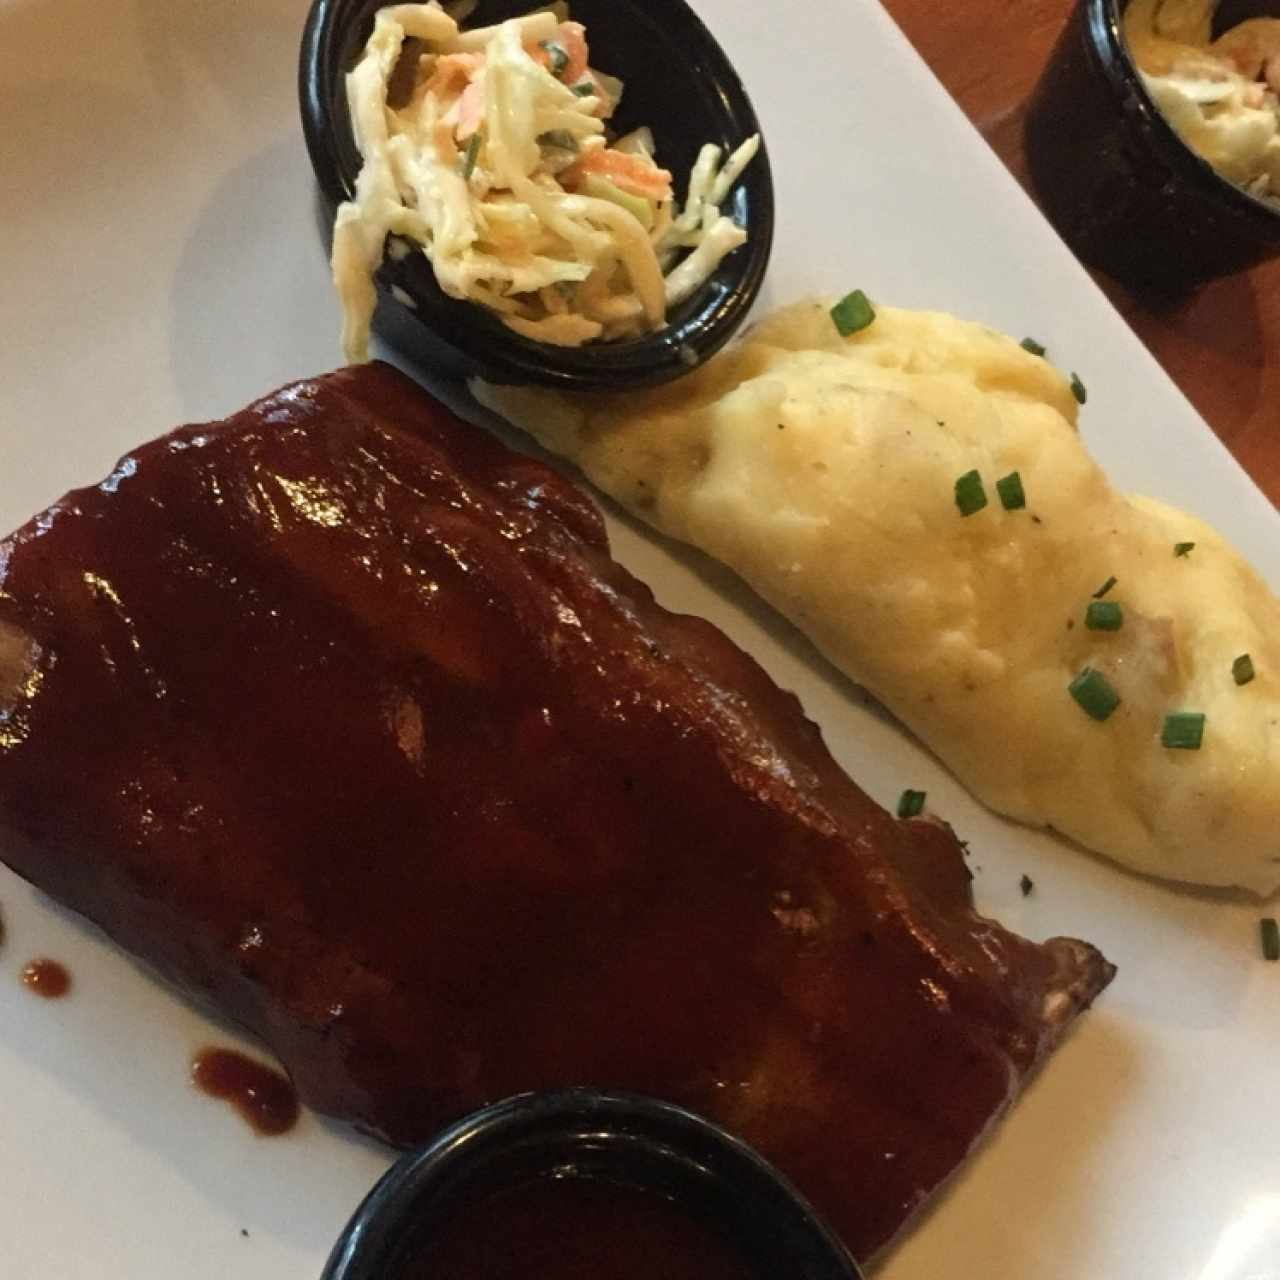 Friday's Favorites - Baby Back Ribs